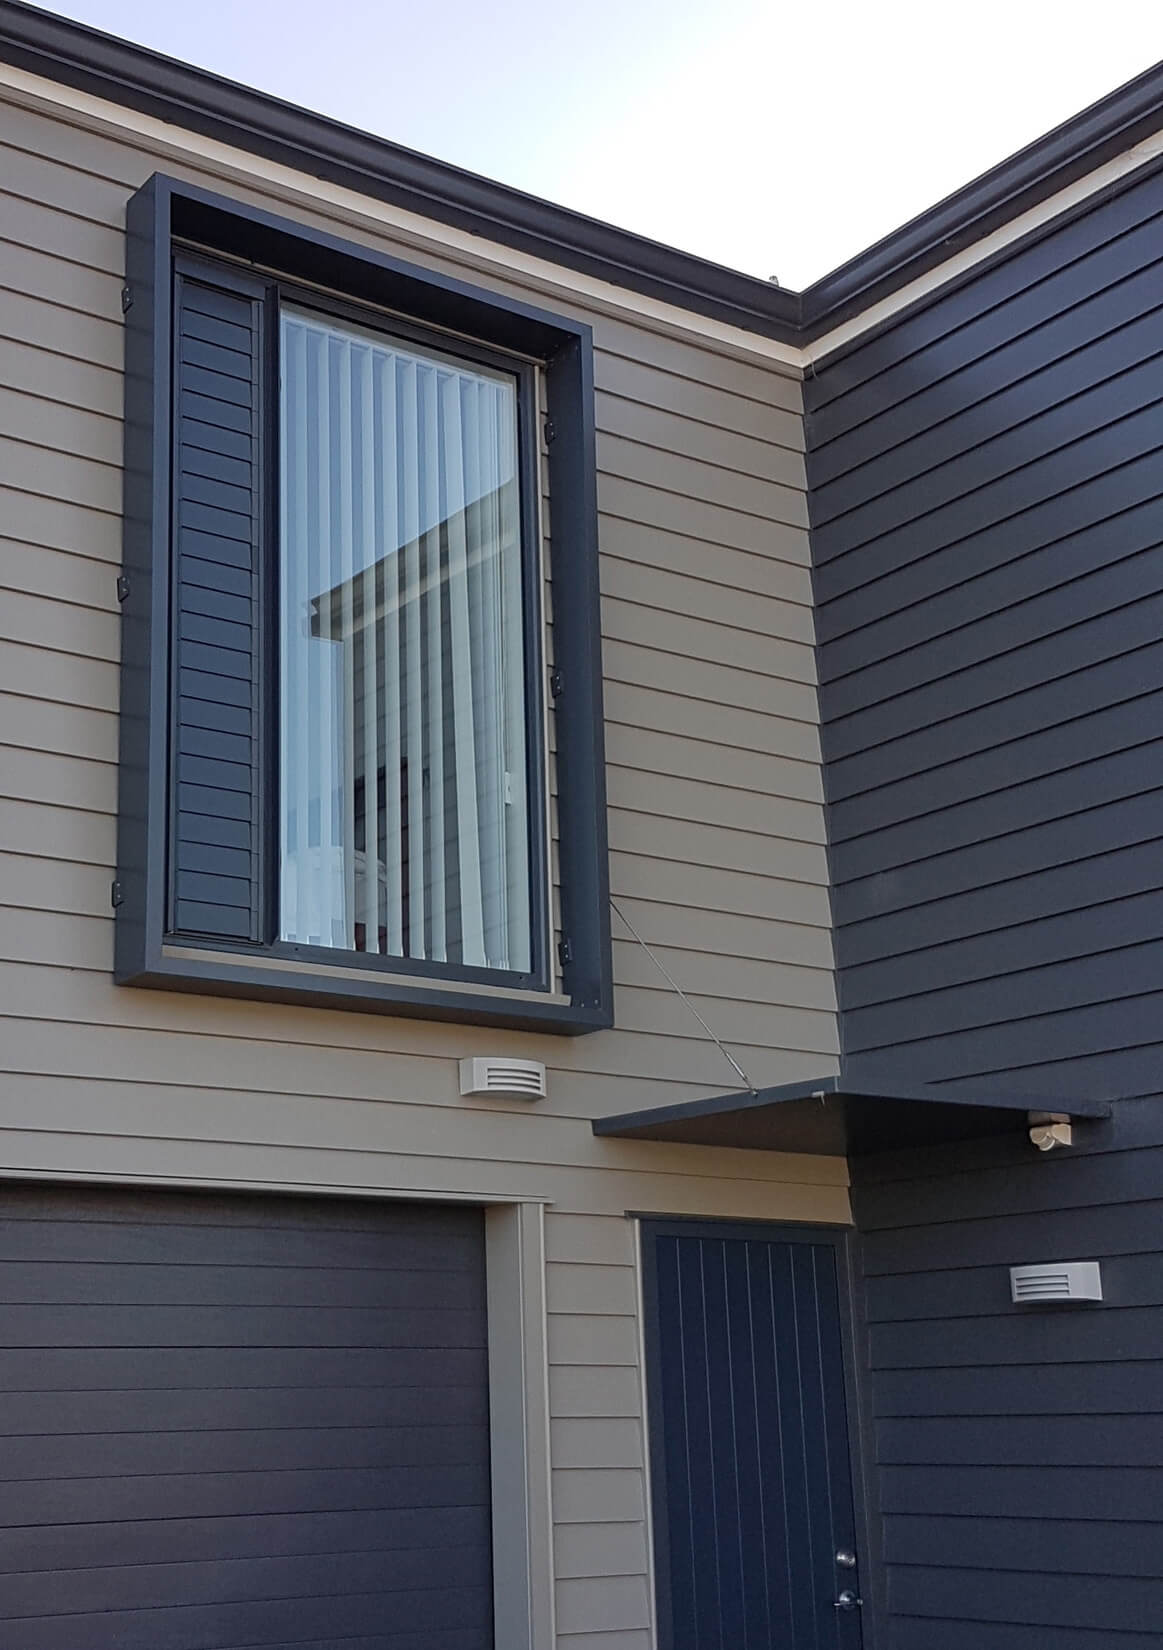 Hobsonville Point project - gallery image 5